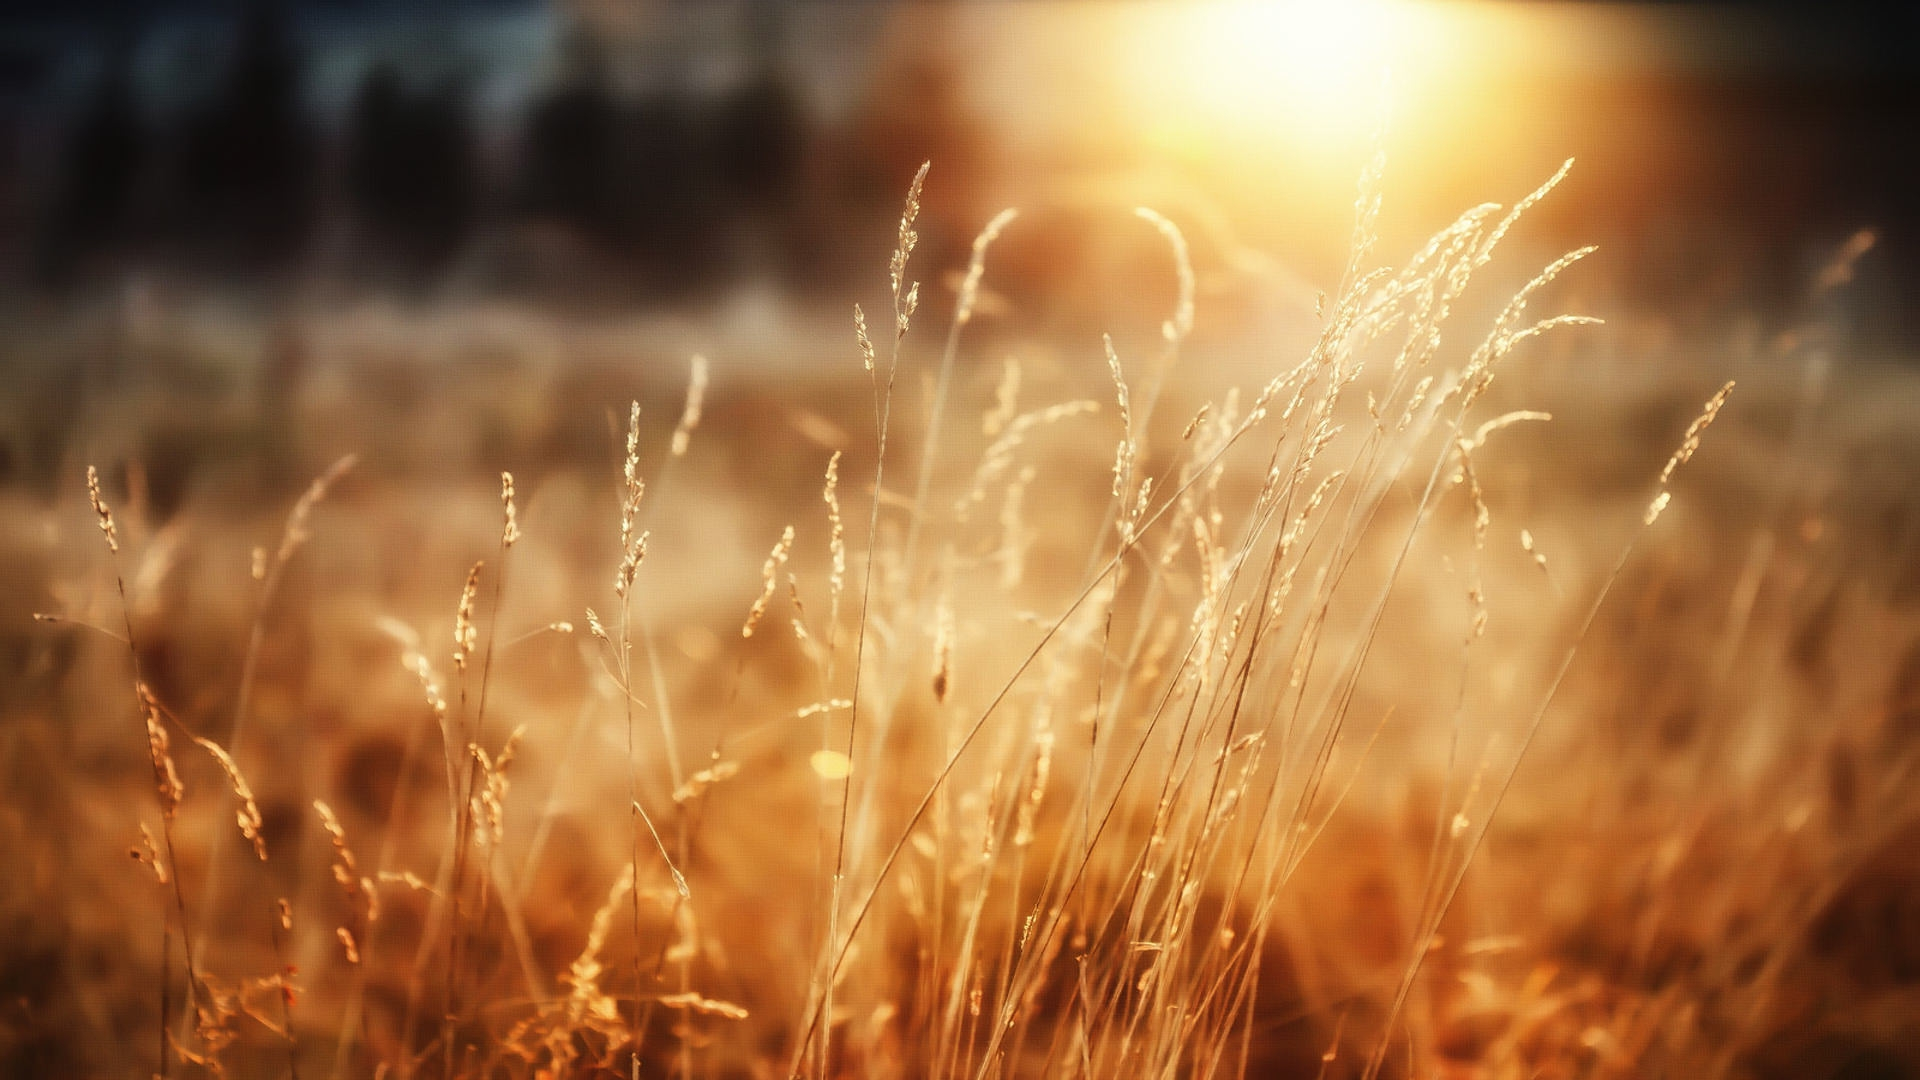 Morning Sunshine Wallpapers